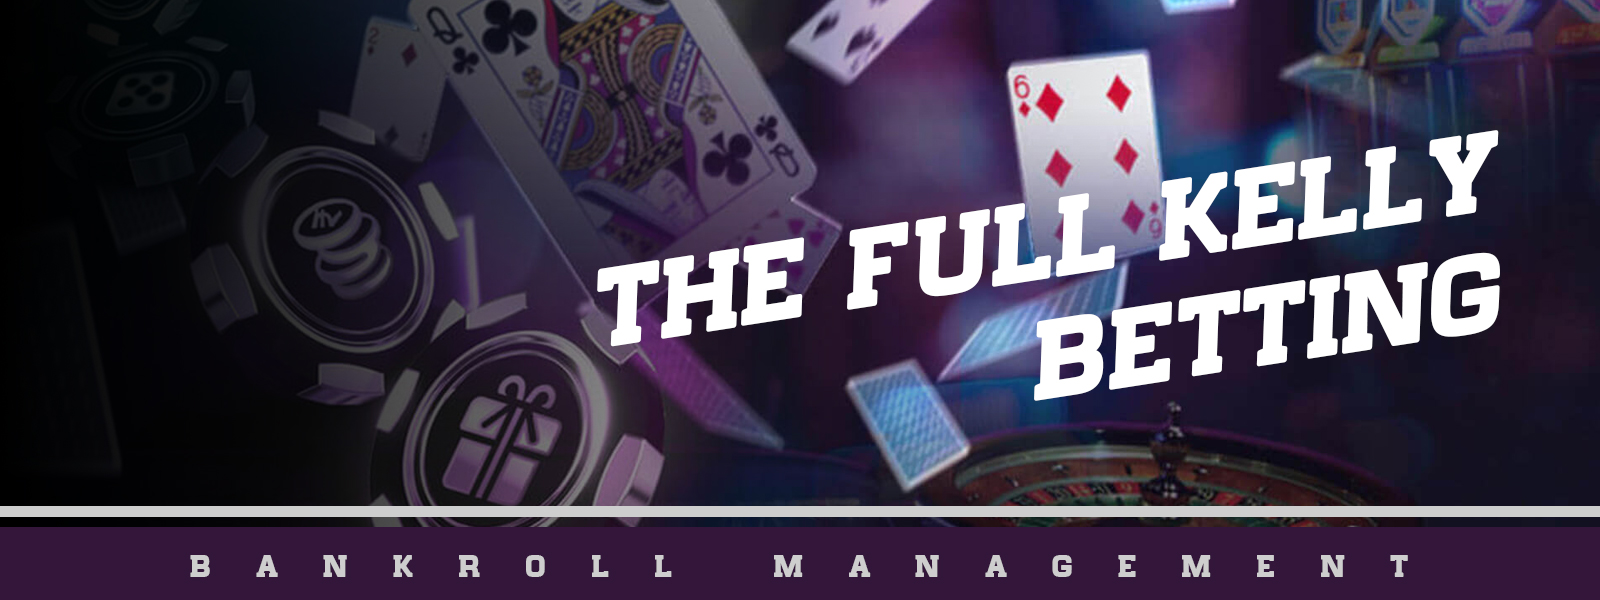 The Full Kelly Criterion Betting Bankroll Management